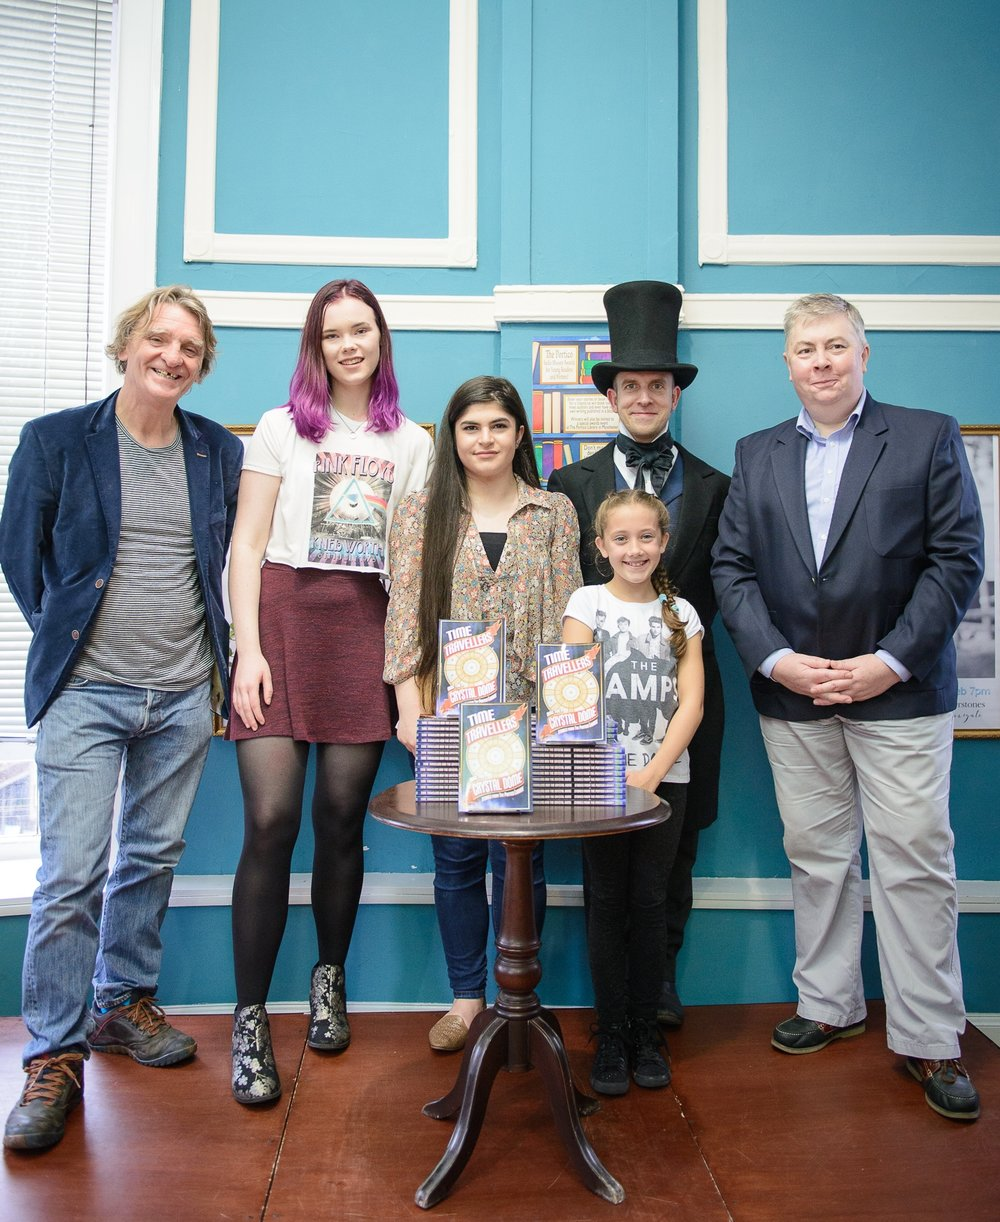 From left to right: Melvin Burgess (Portico patron), Emily Graham, Aya Ahmad, Macey Wareing, actor as Peter Mark Roget and Paul Morris at Waterstones, Deansgate.